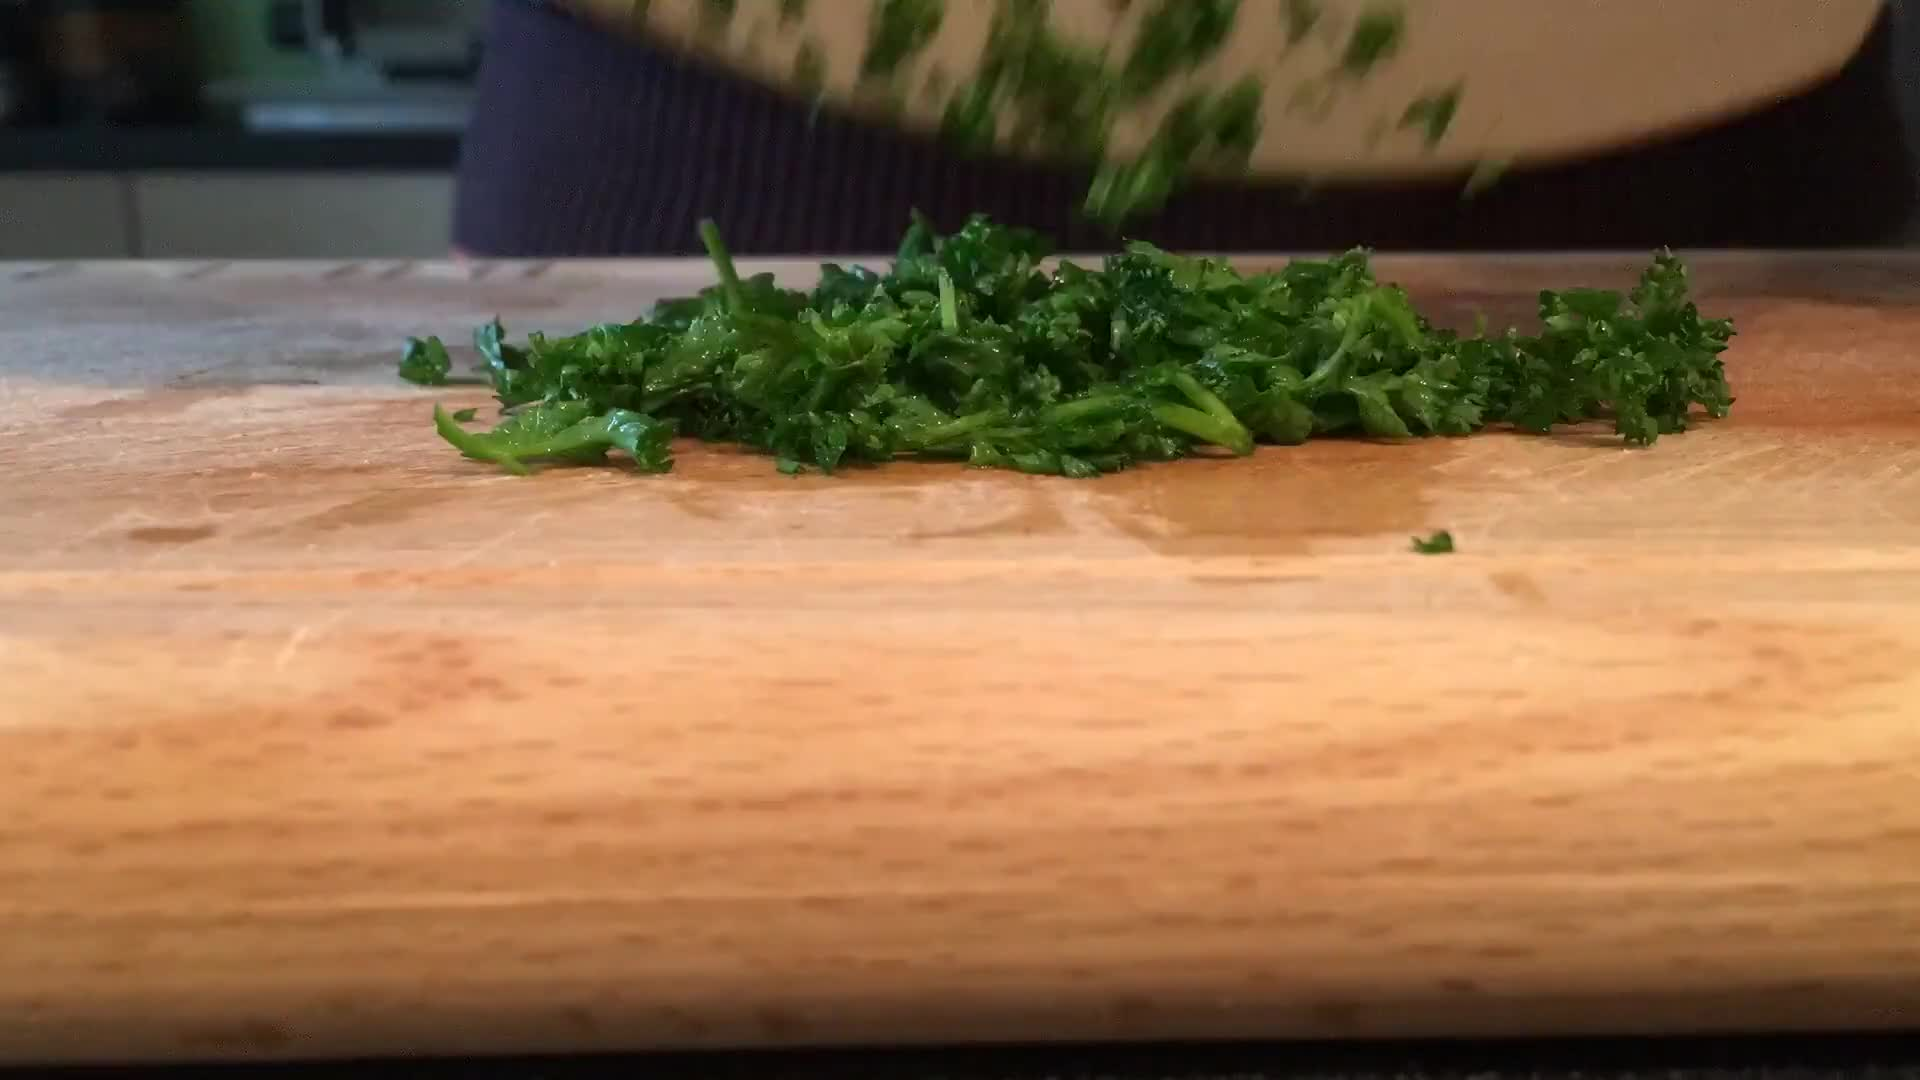 Chopping vegetable with a big knife